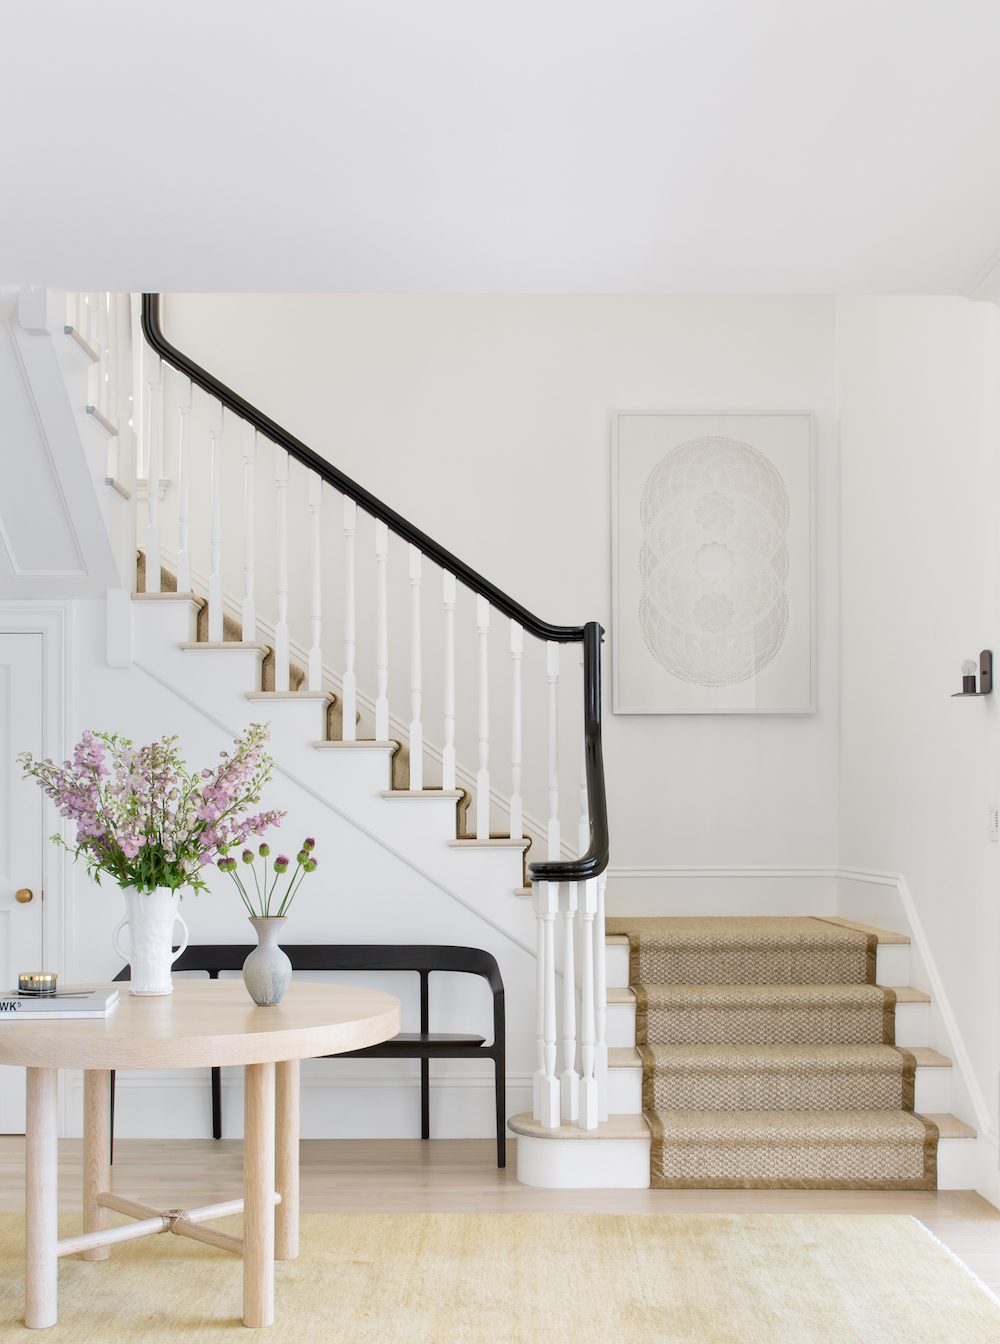 Explore A Light, Bright and Welcoming Family Home in San Francisco